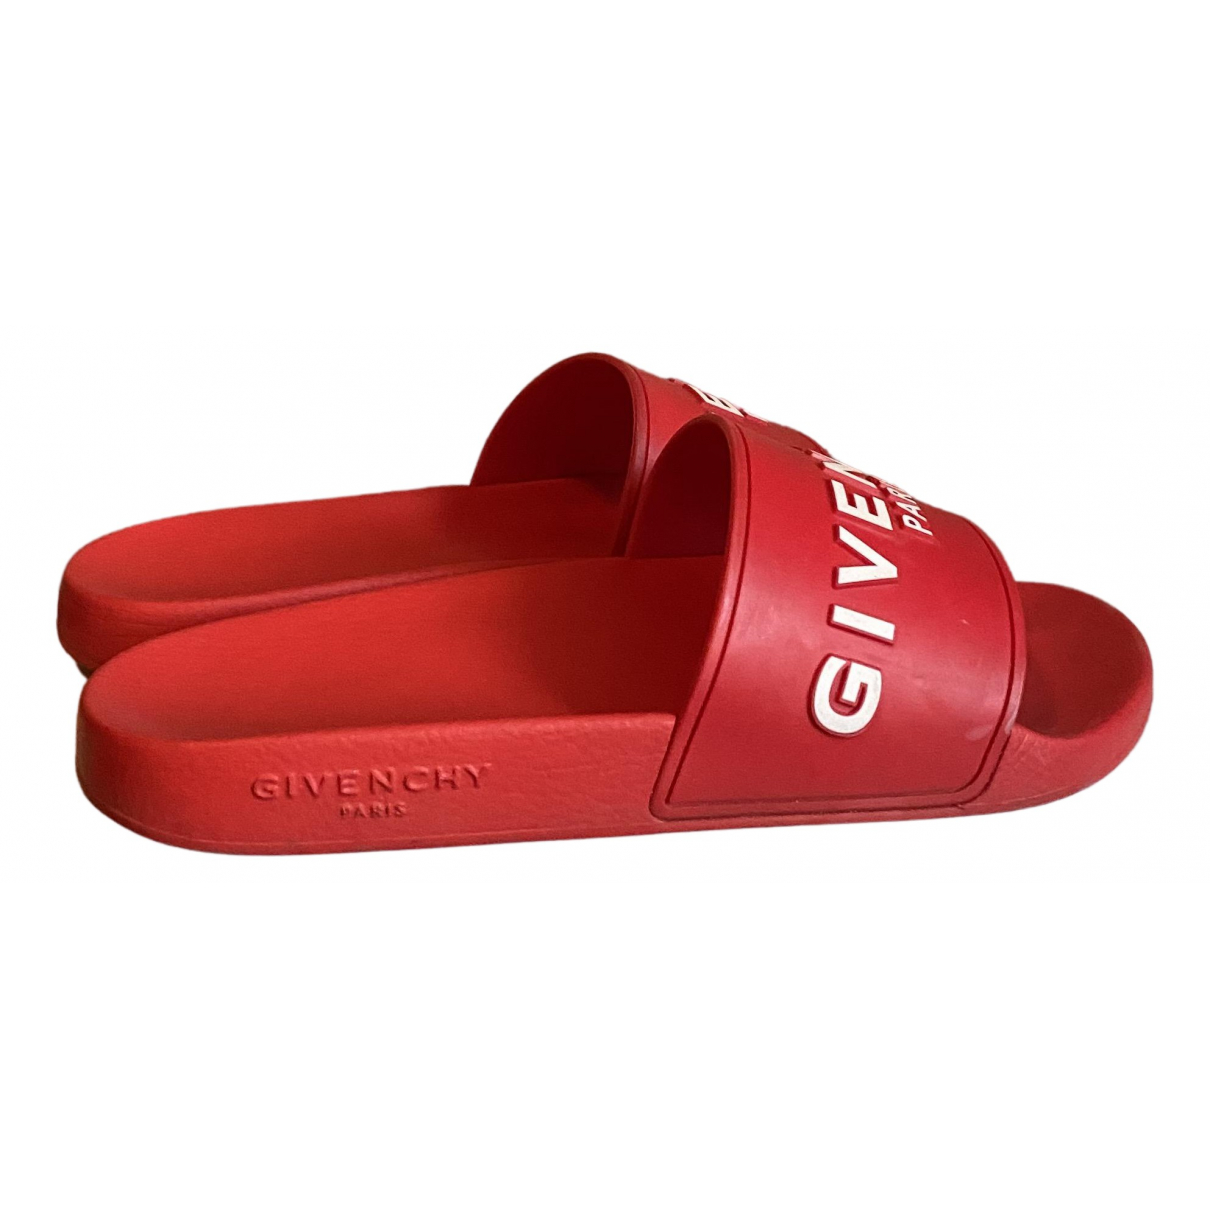 Givenchy N Red Rubber Sandals for Women 37 EU